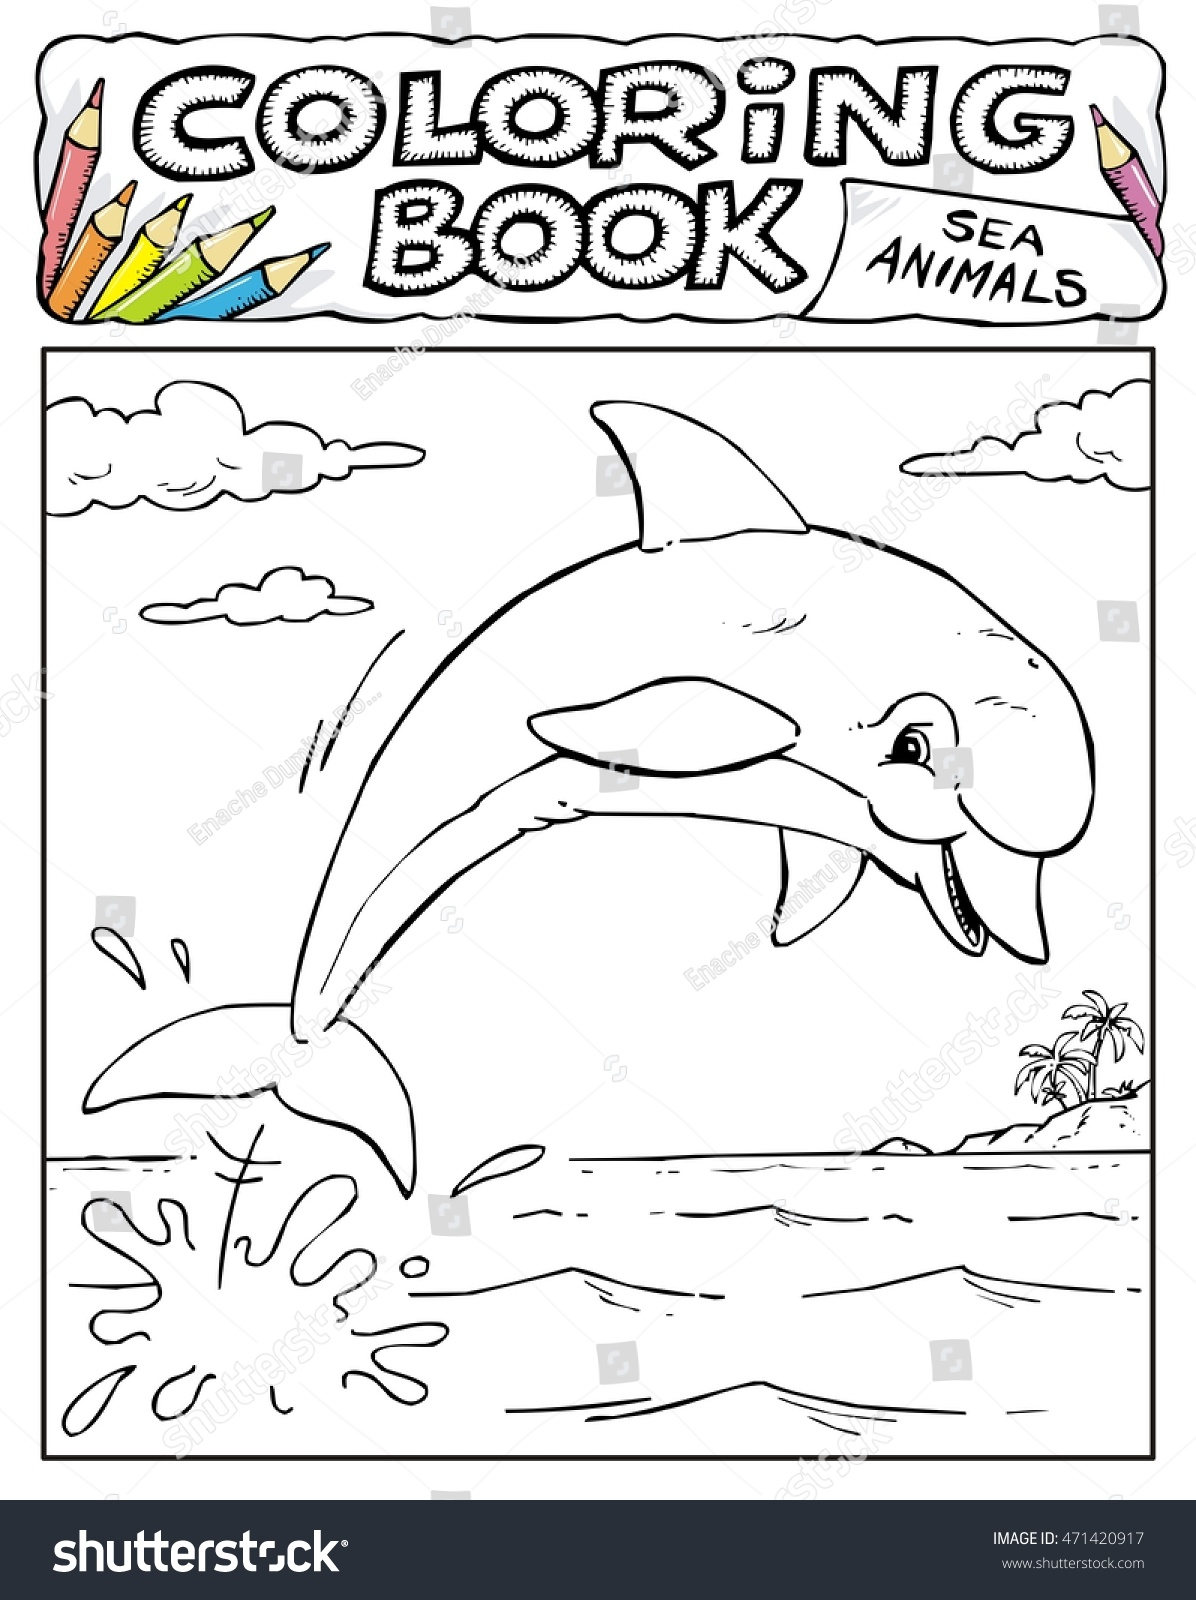 Dolphin Coloring Book Pages SEA ANIMALS Stock Vector (Royalty Free ...